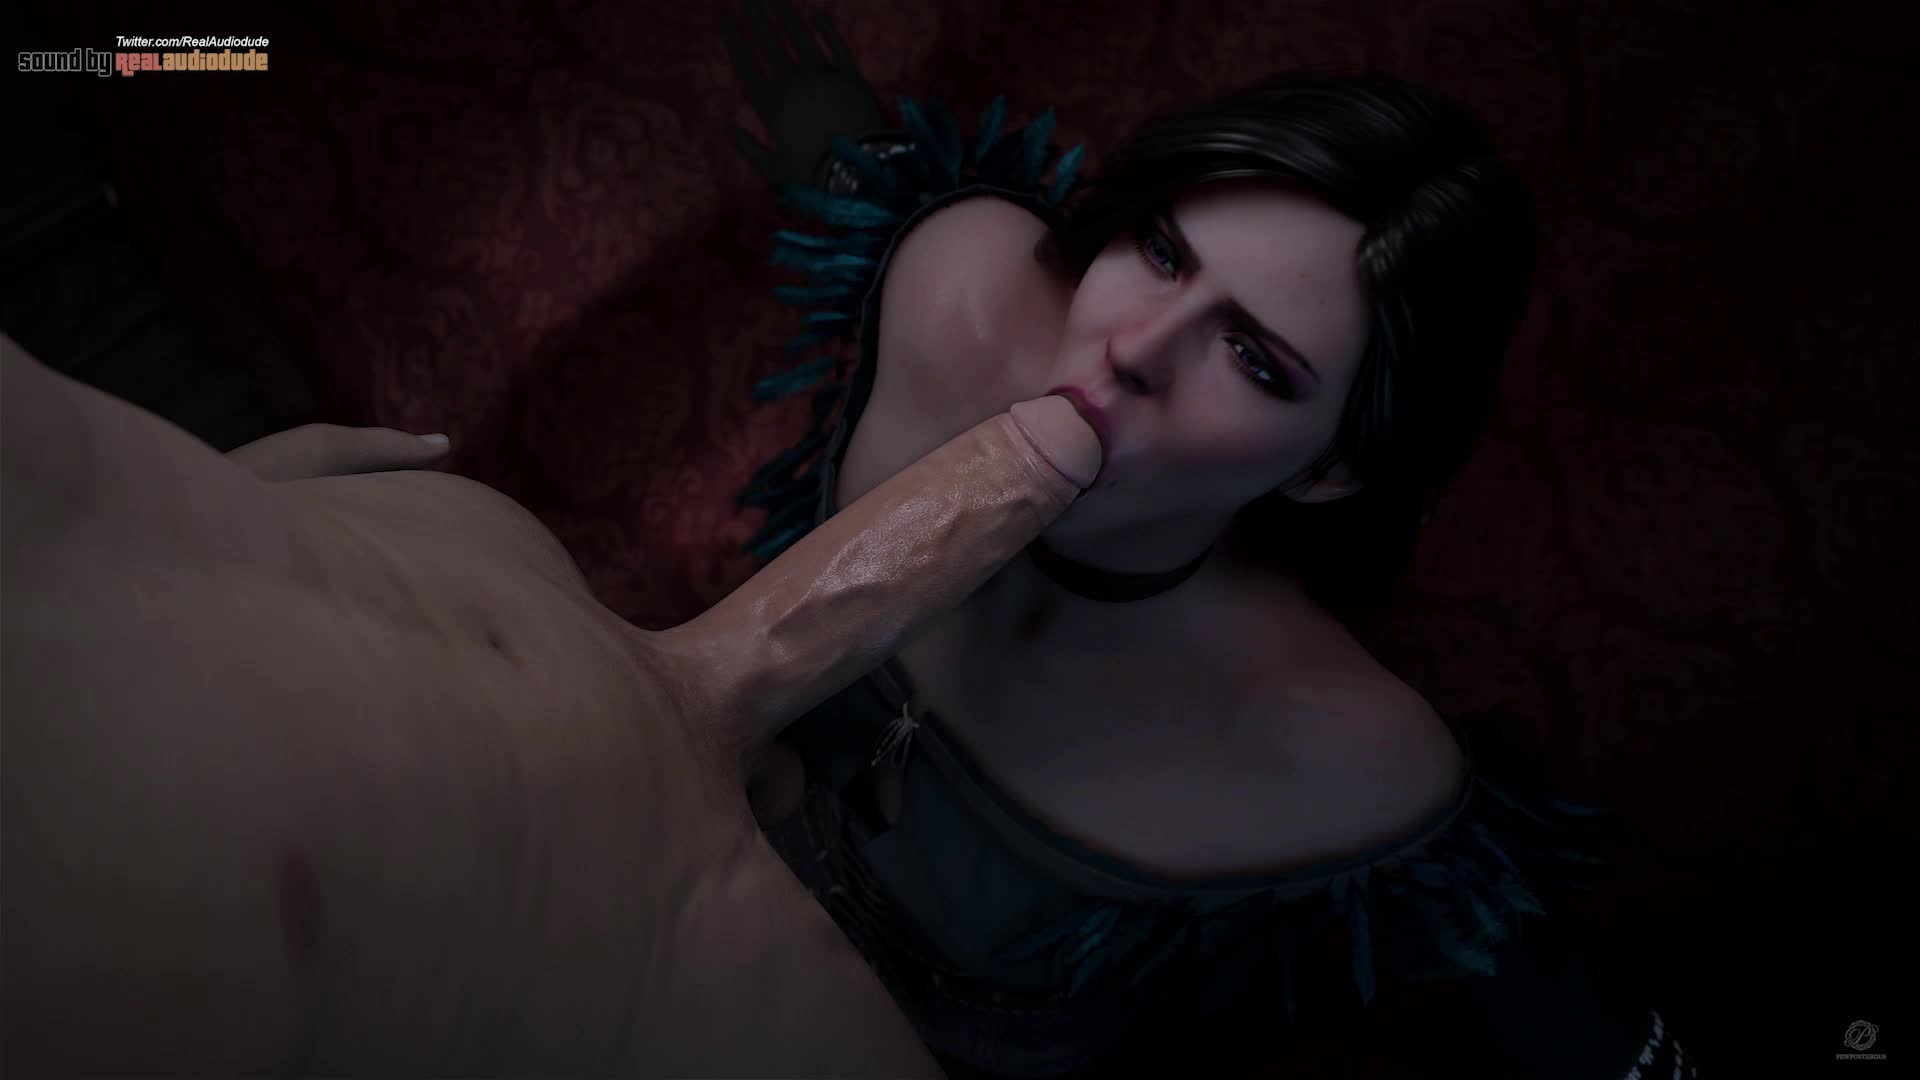 Yennefer is sucking huge cock (Sound) (Pewposterous, Audiodude)